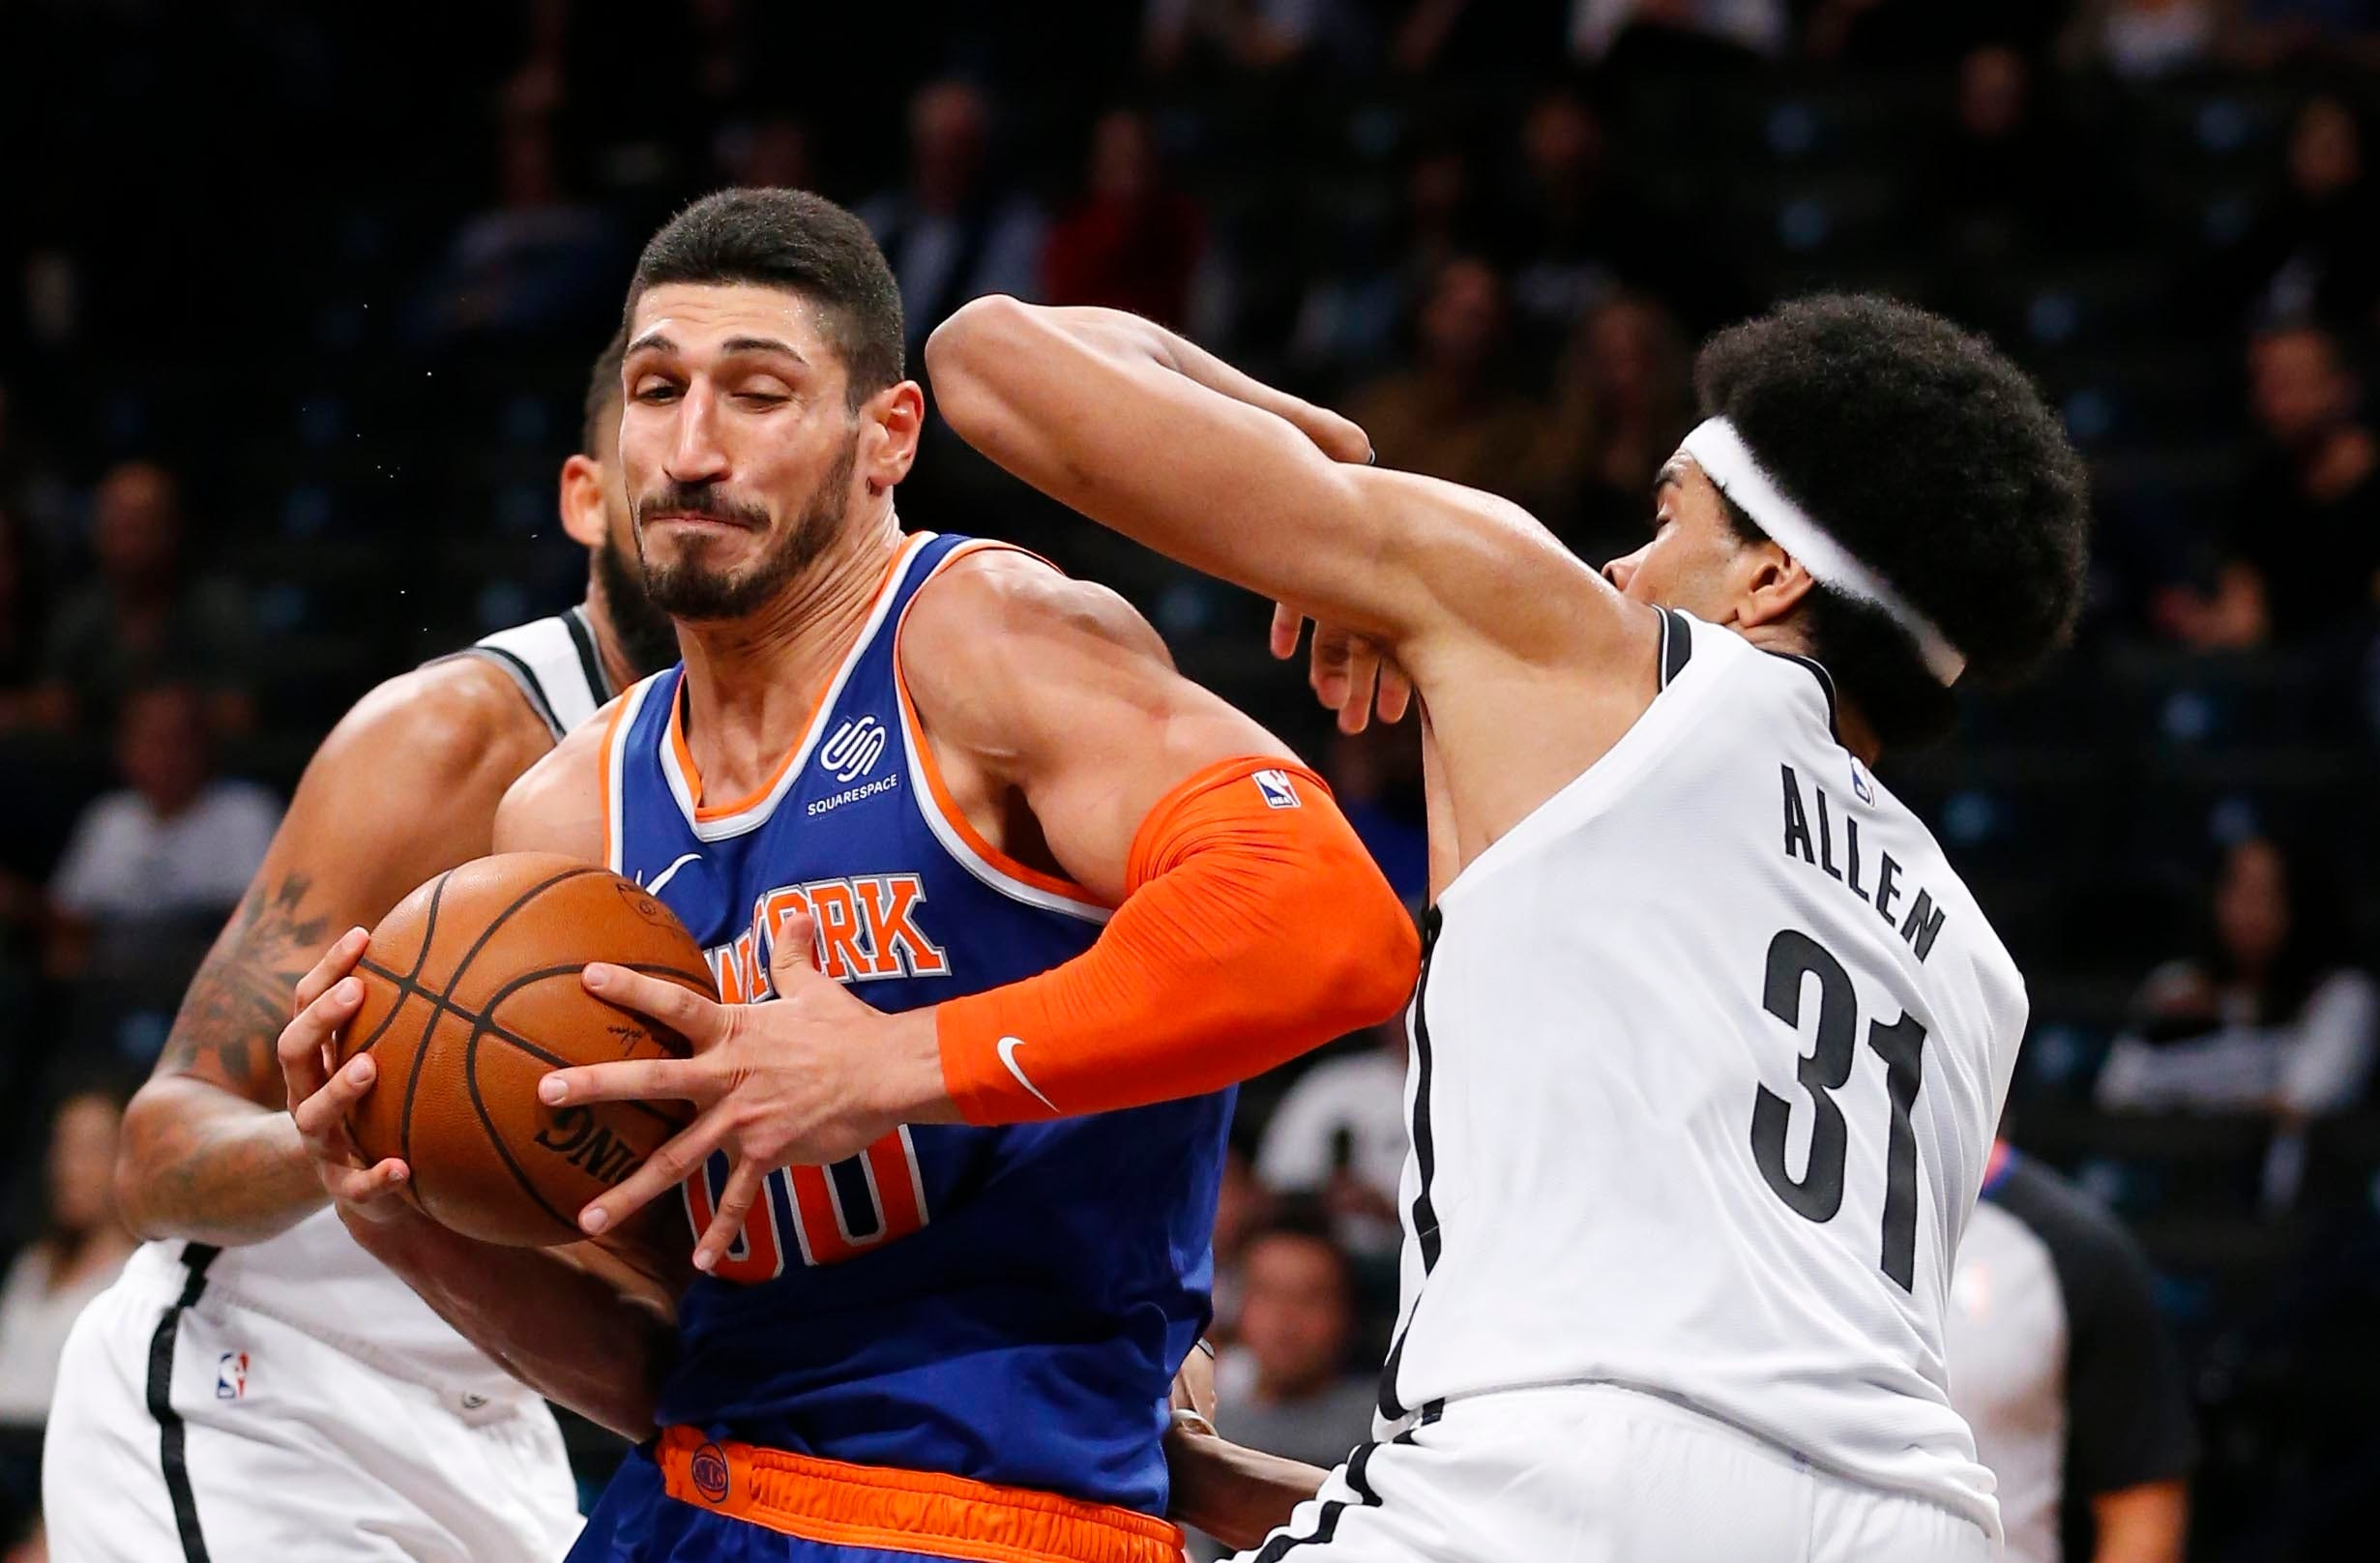 new york knicks  5 players who have stood out in preseason